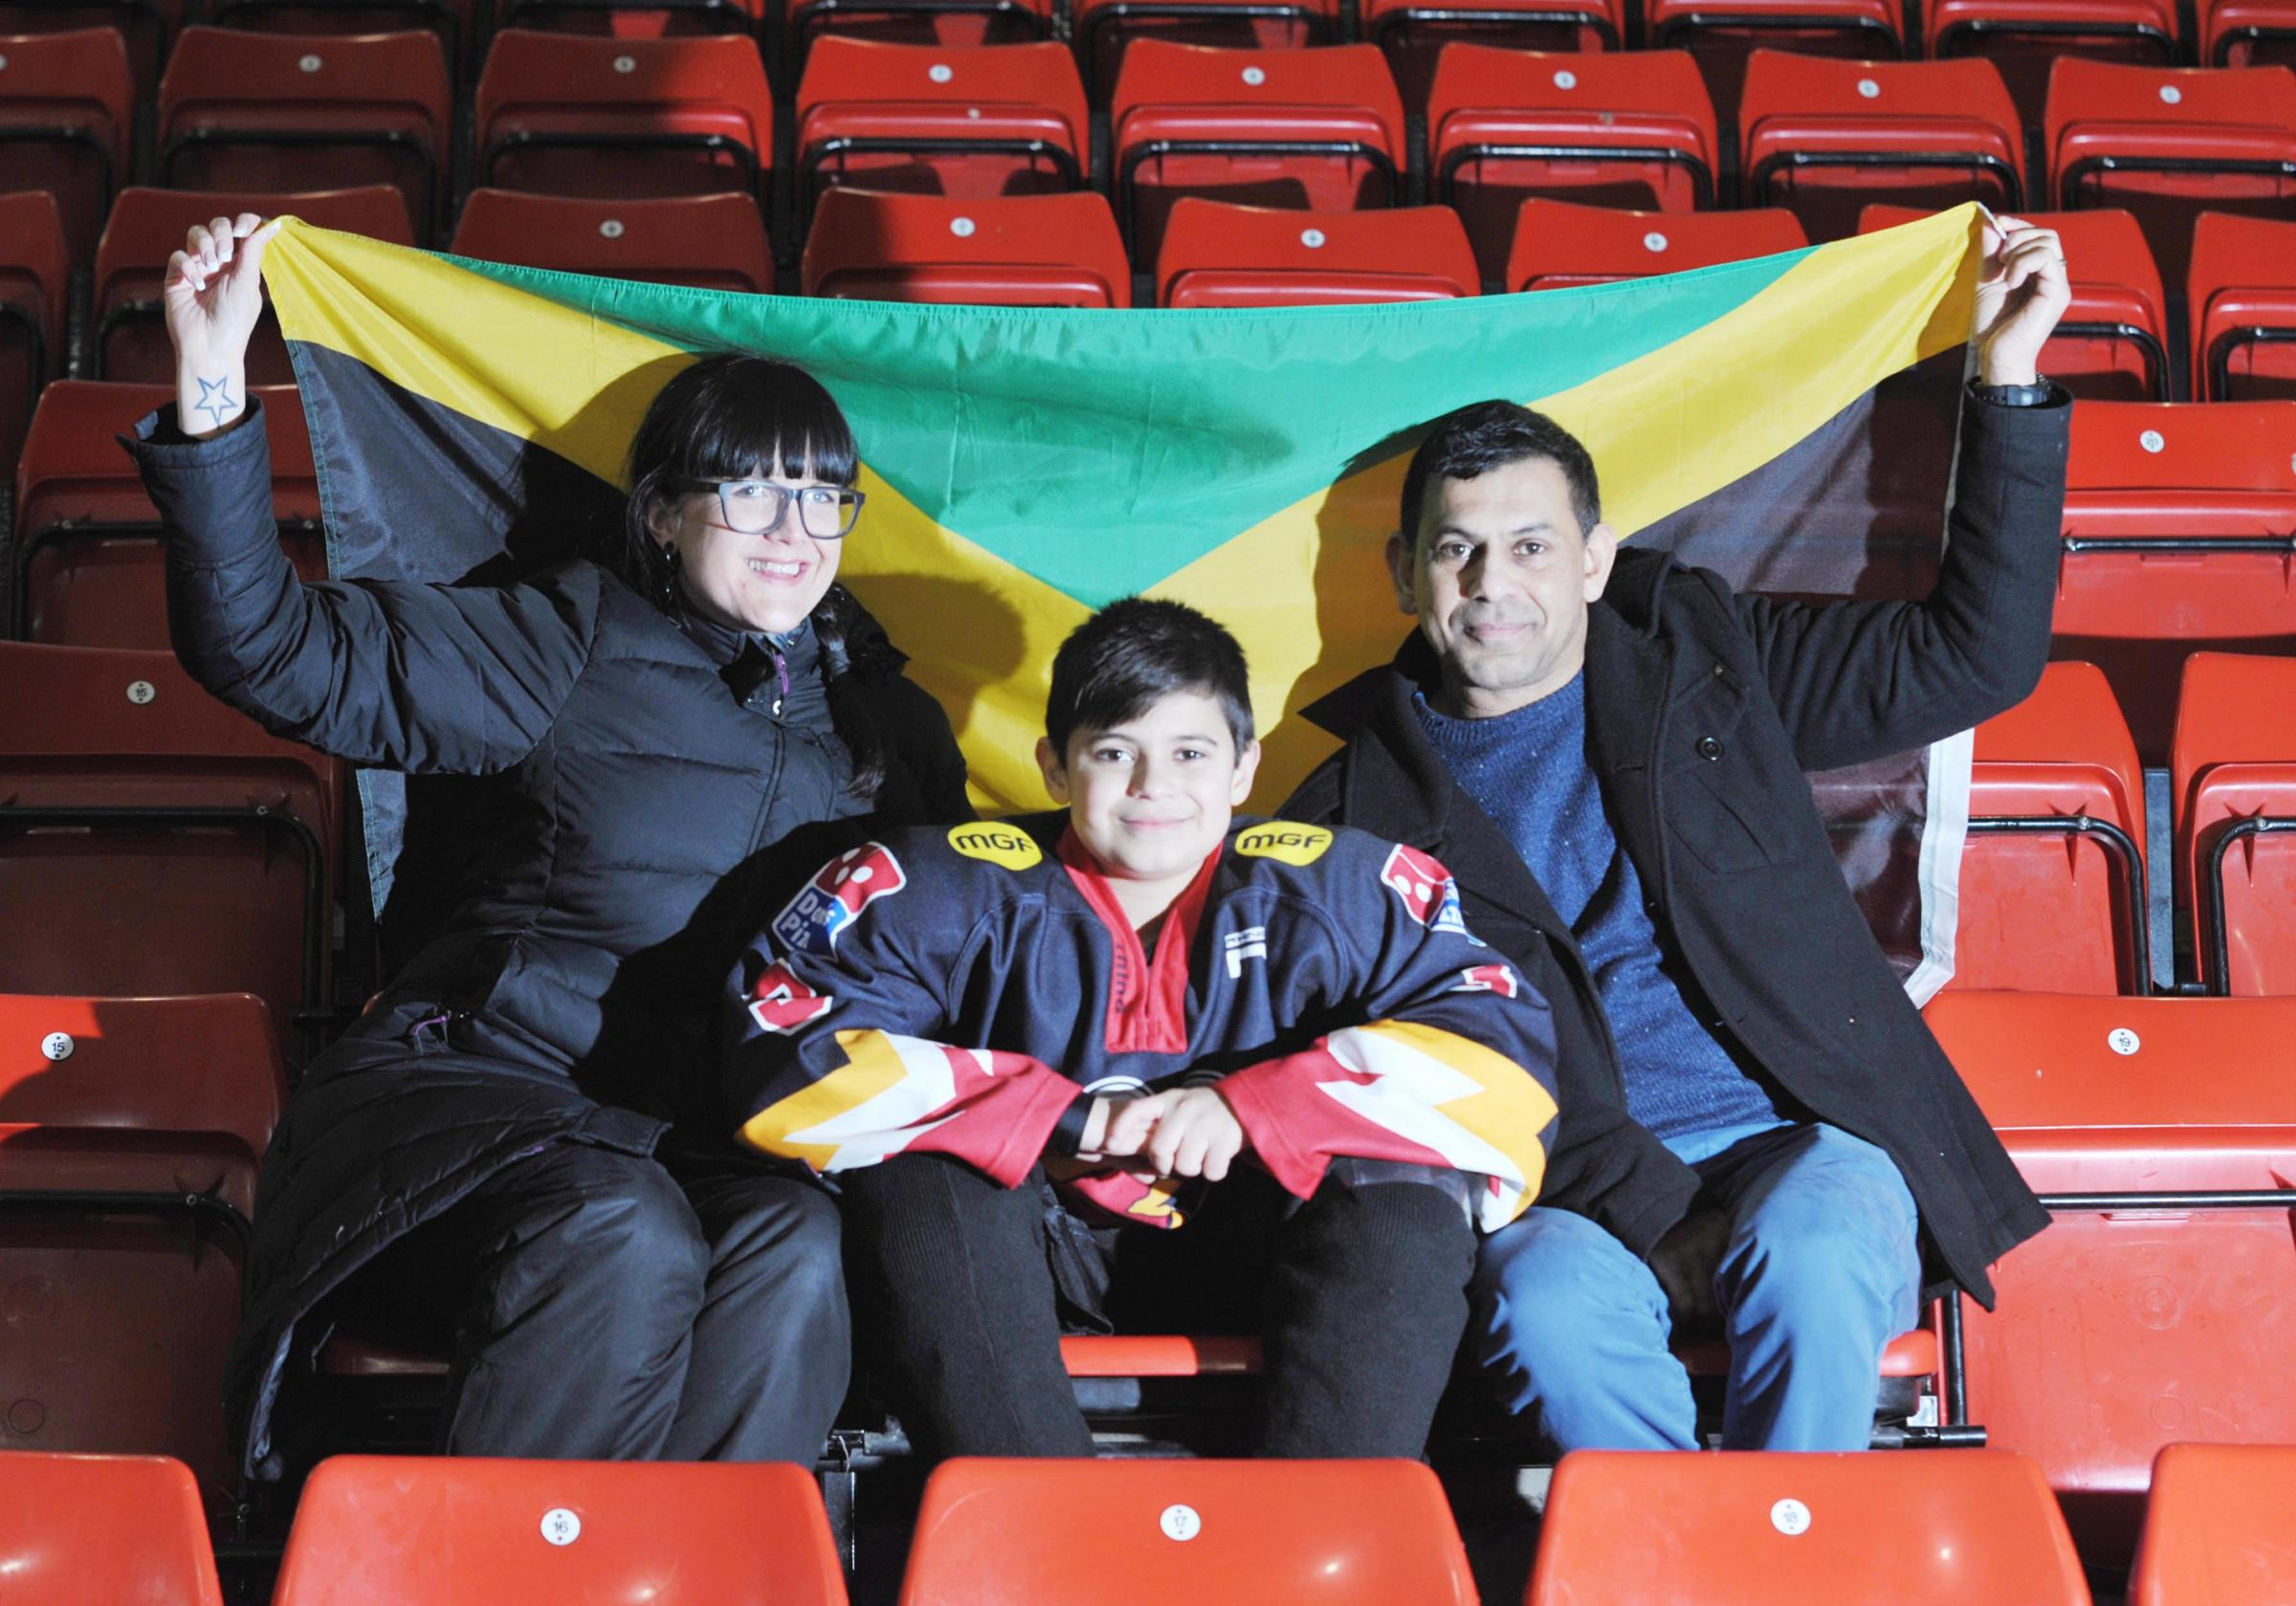 OLYMPIC DREAM: Blackburn Hawks youngster Sol Saddoo, aged 12, pictured with team manager Emma Ludlow and dad James holding the Jamaican flag, hopes to one day compete in the Winter Olympics